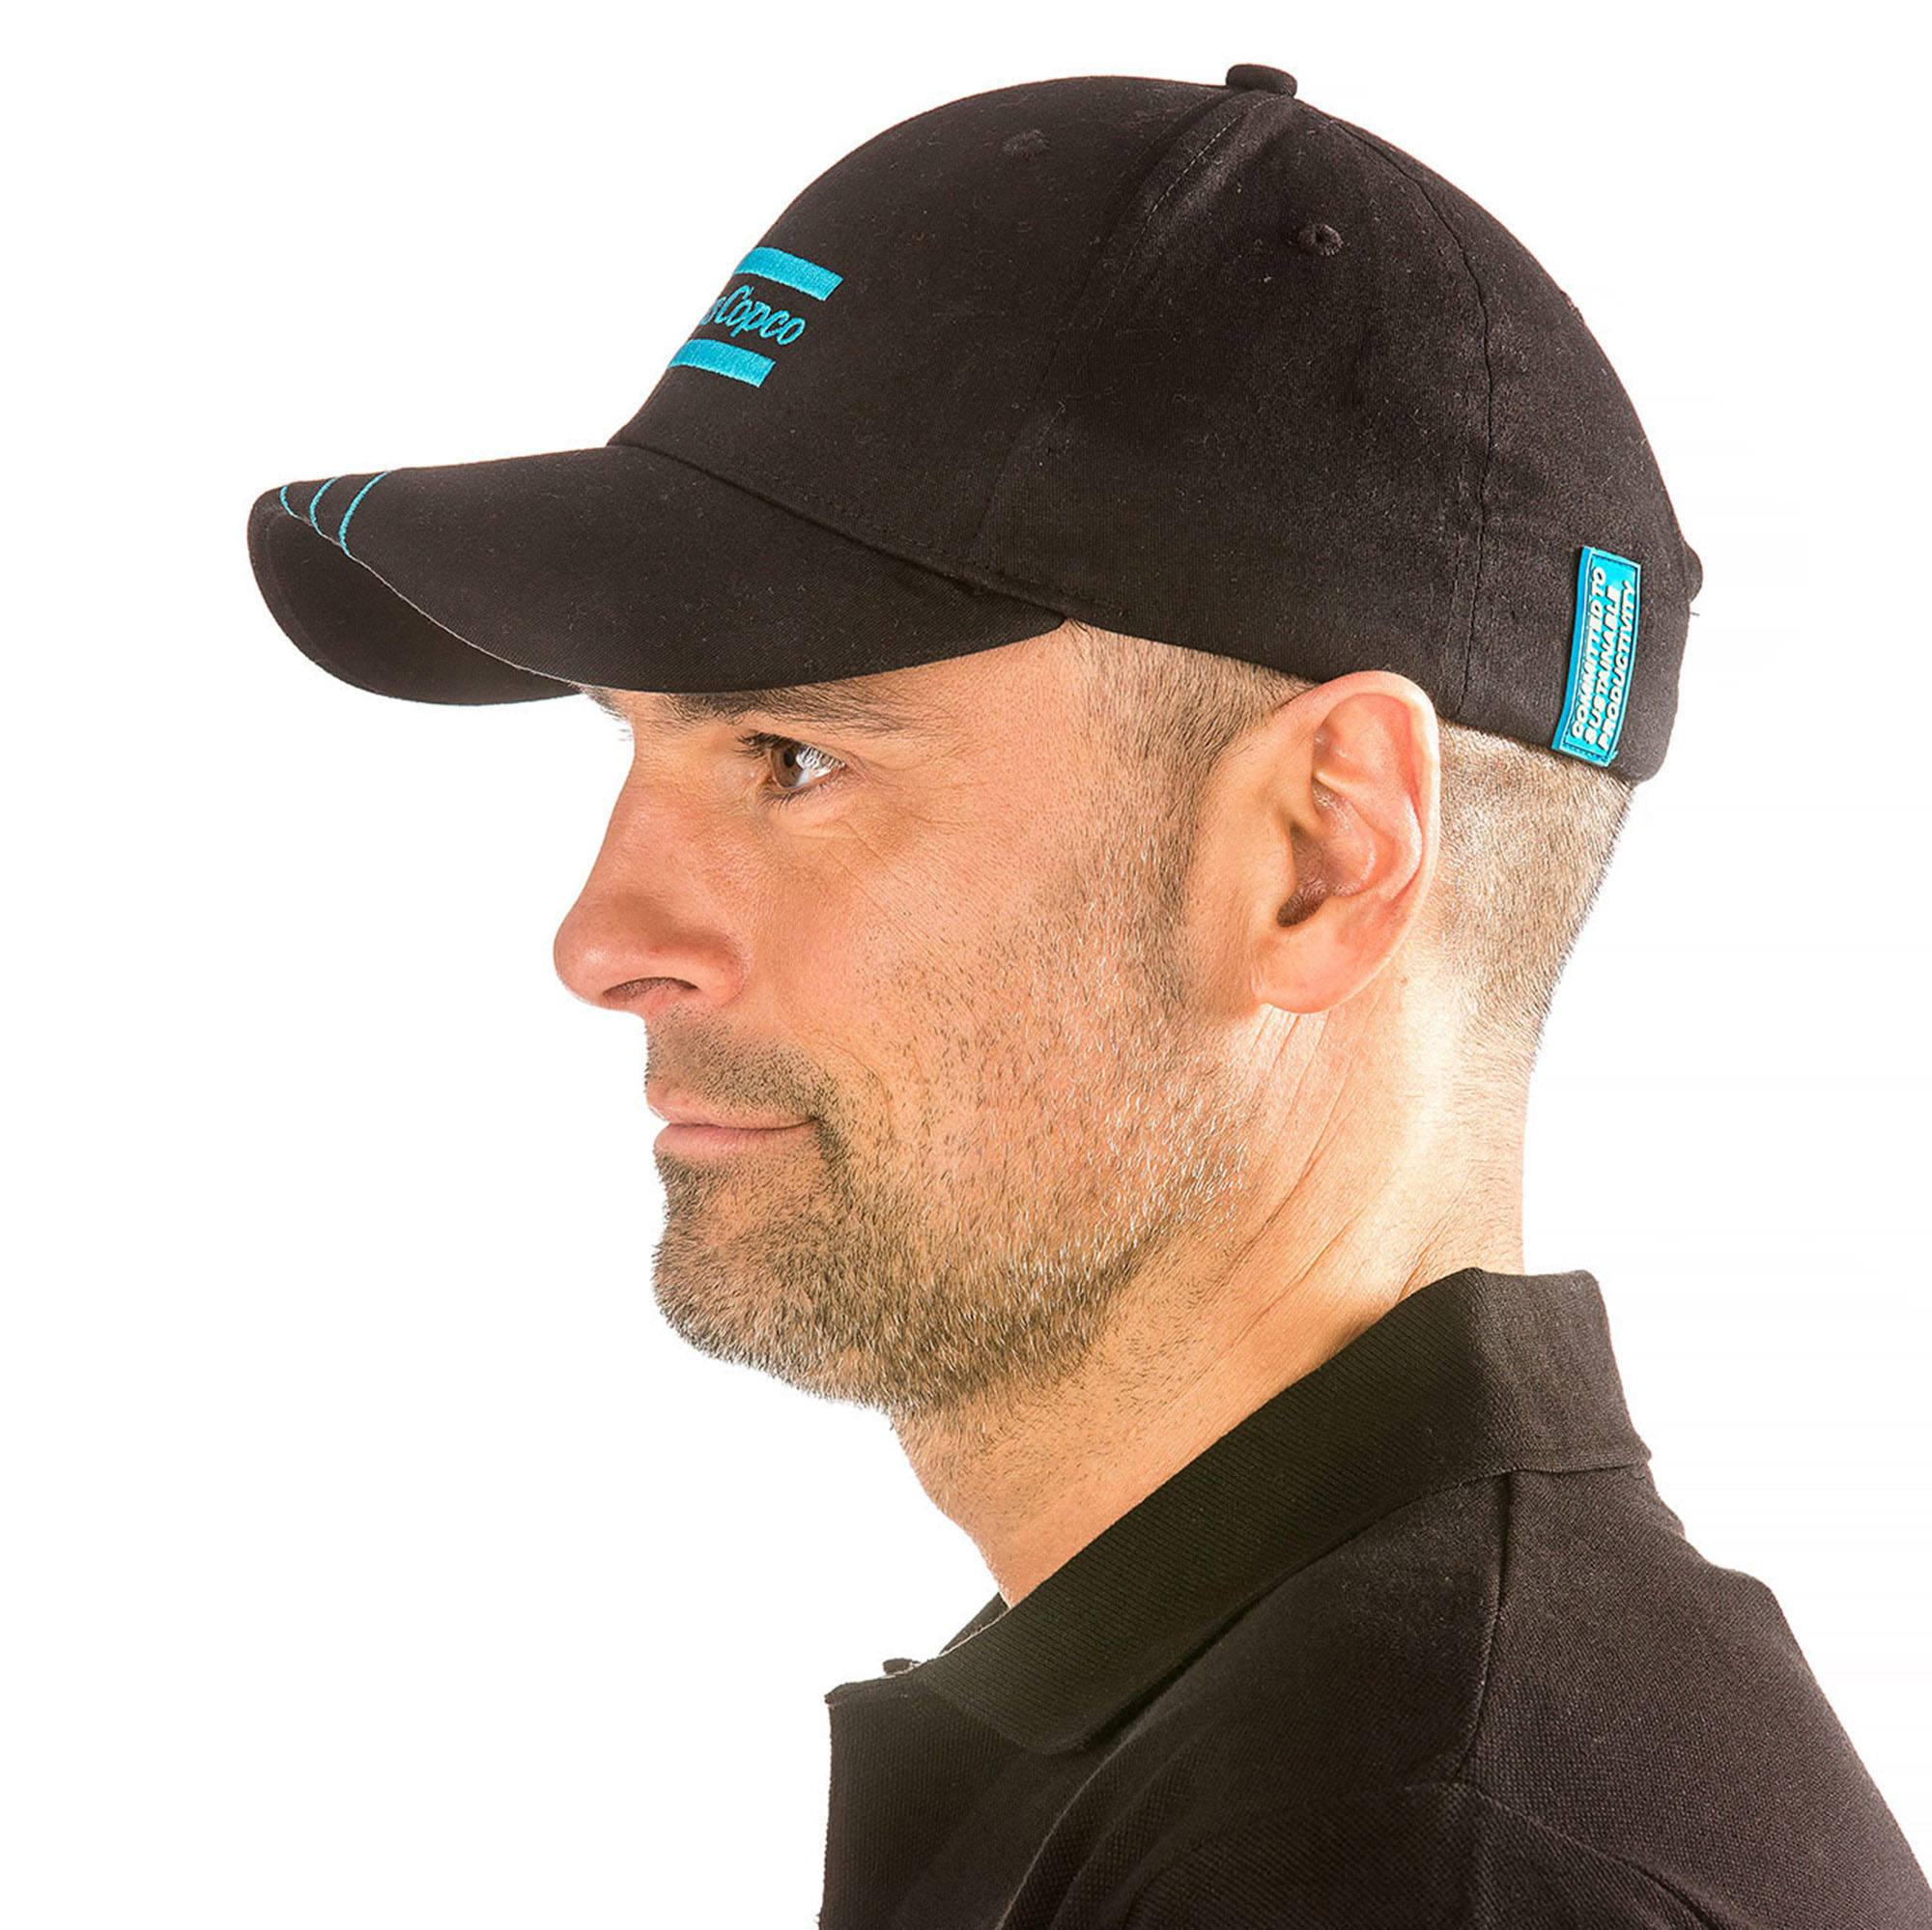 This cap has been developed to obtain the best fitting possible. The fabric is made of Cotton and Spandex which makes the cap slightly elastic. An adjustable metal buckle together with the elastic fabric makes the cap versatile. The cap has a precurved visor and six panels with air ventilation.